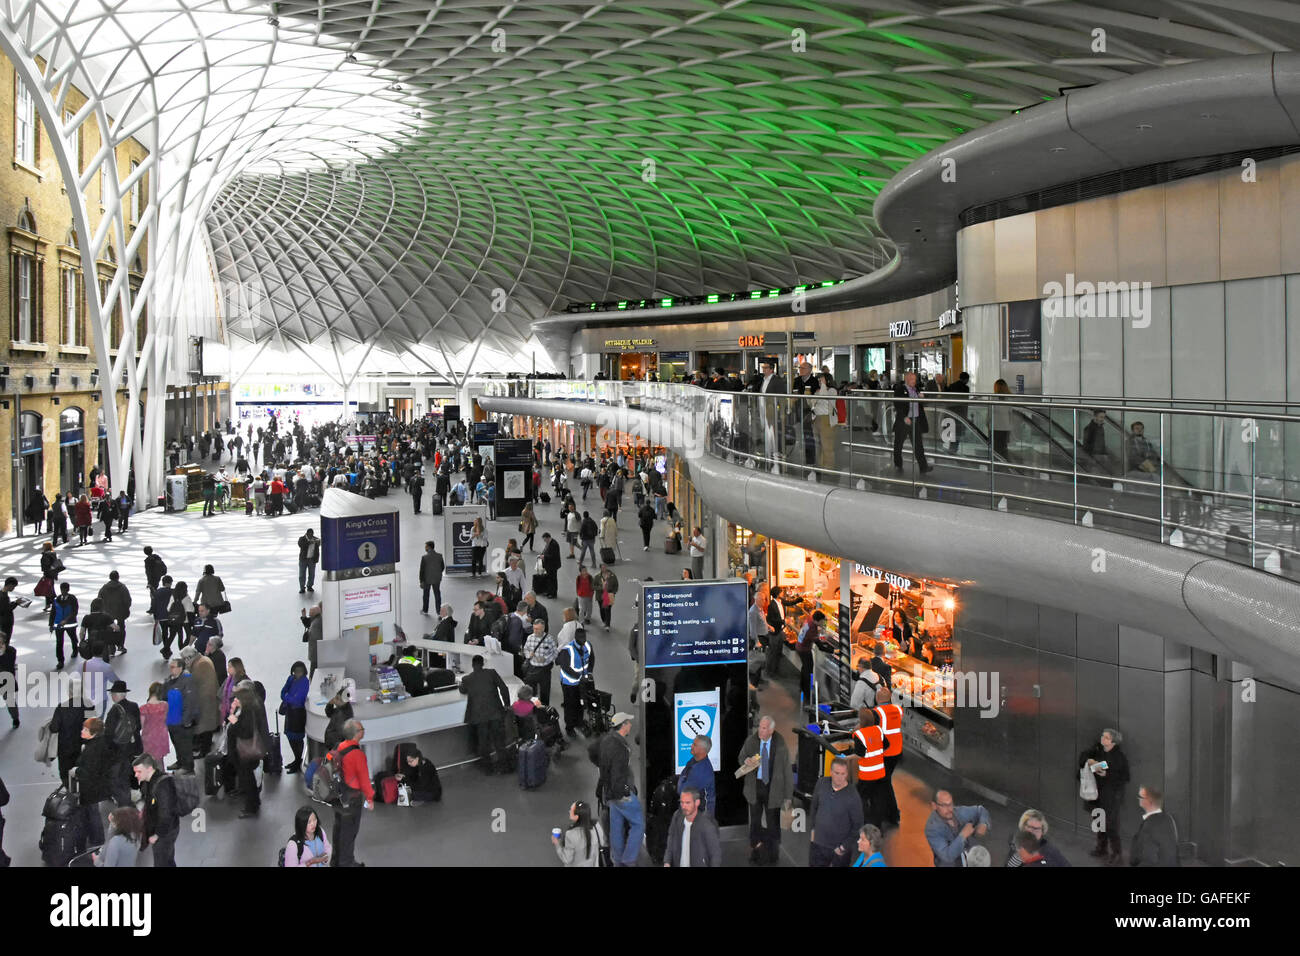 London train stock photos london train stock images alamy - Stansted express ticket office liverpool street ...